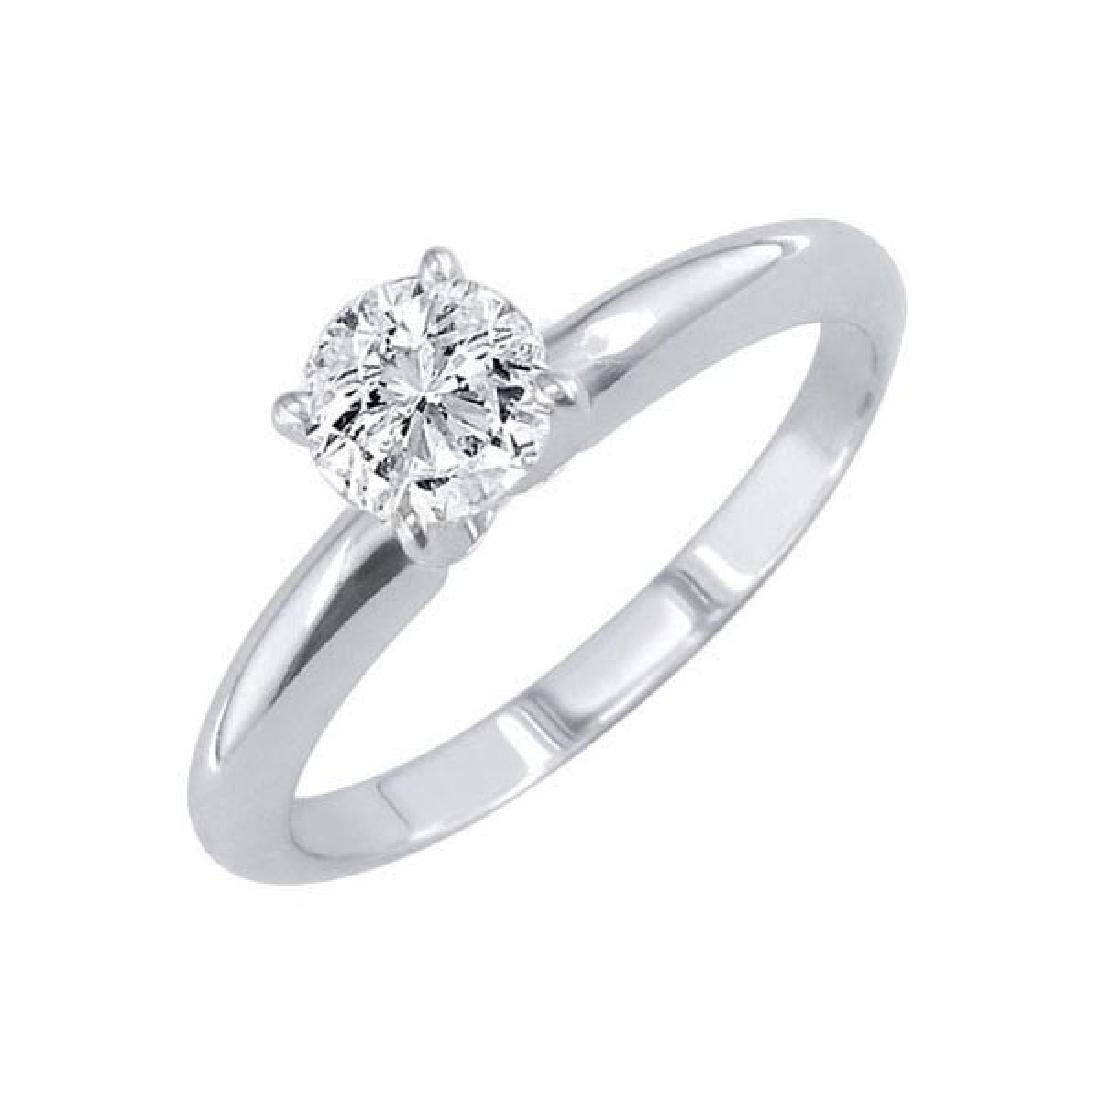 Certified 1.05 CTW Round Diamond Solitaire 14k Ring E/I